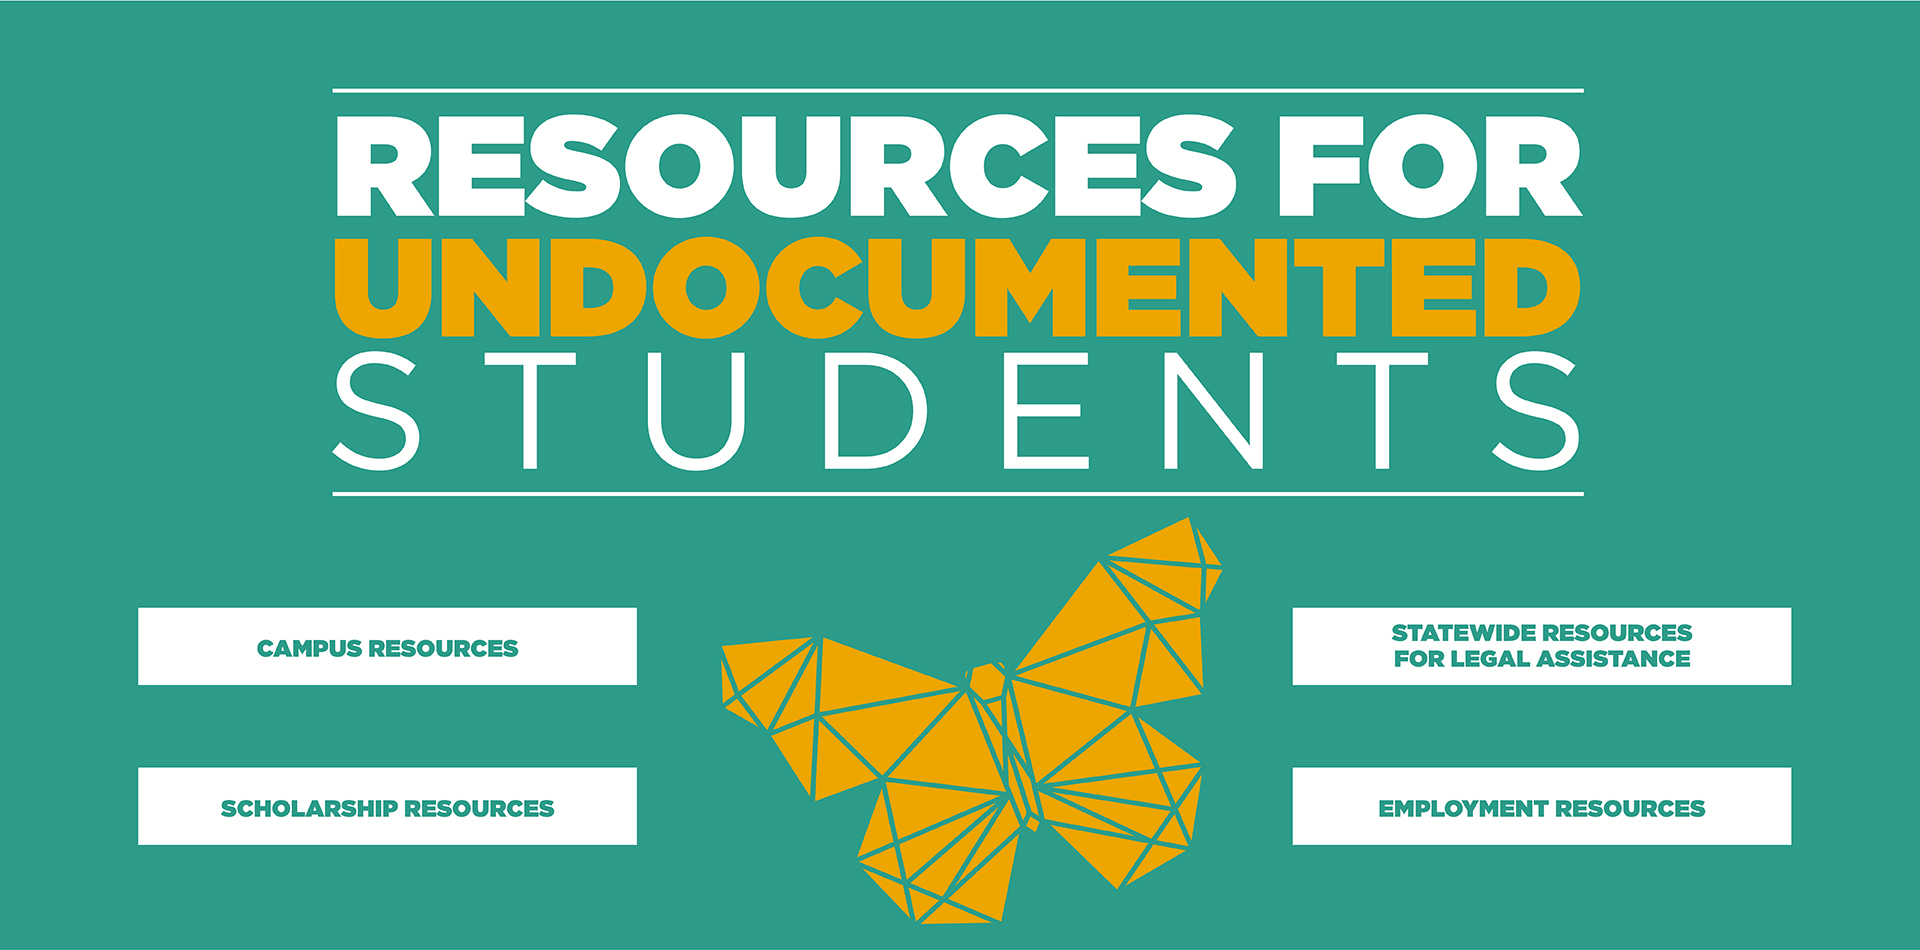 Resources for Undocumentet Students - PDF